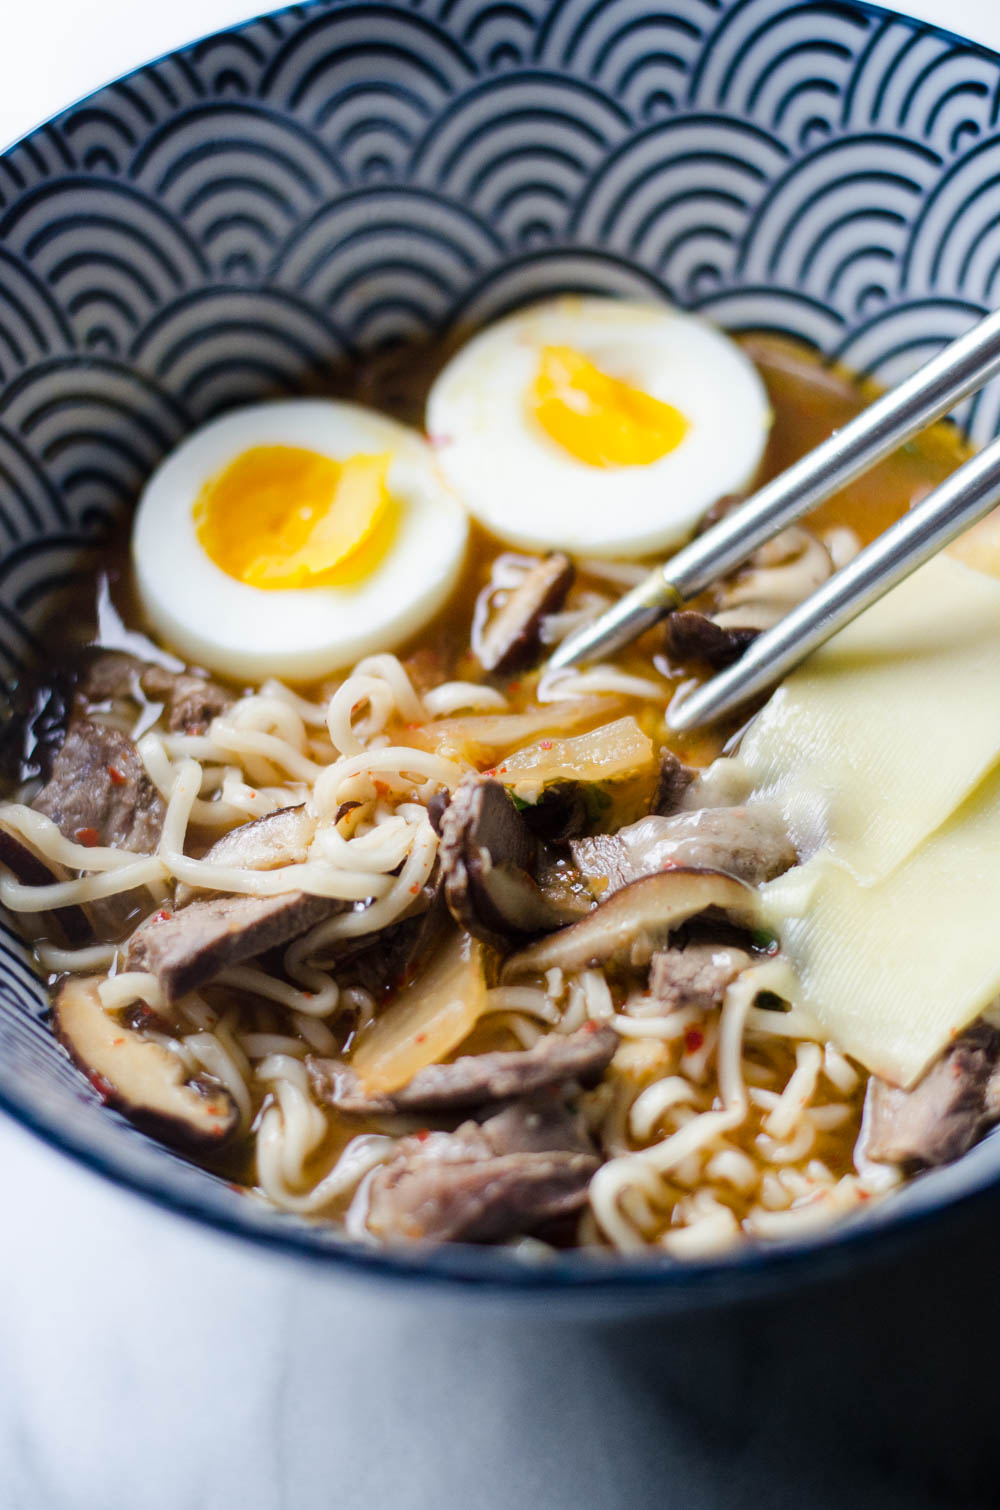 What I Ate Wednesday - Ramen for Supper